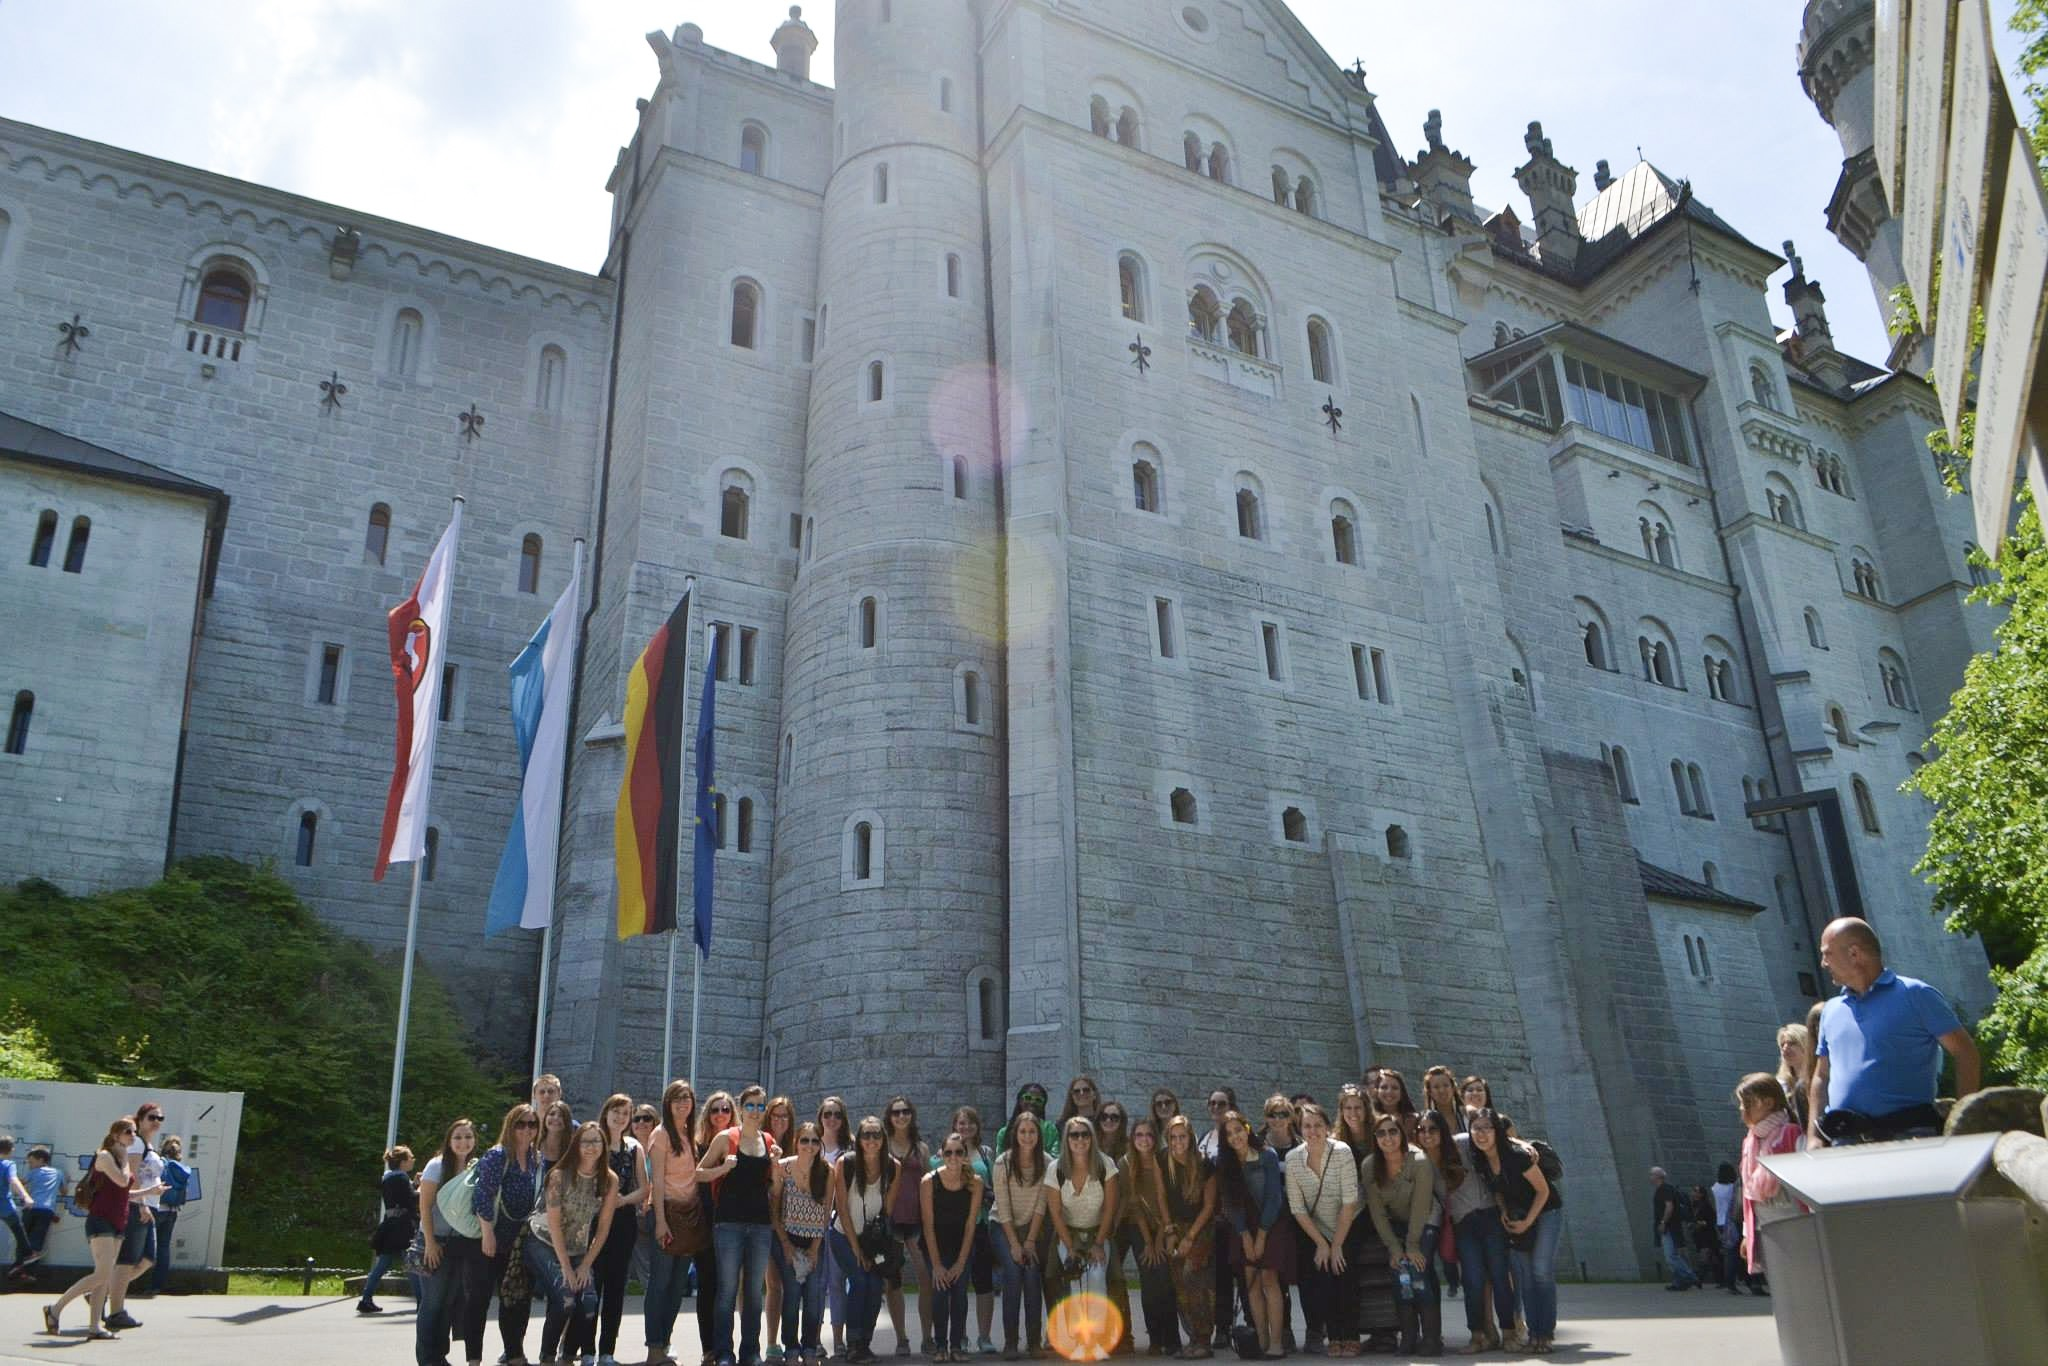 EF College Break Tour to Neuschwanstein Castle in Germany